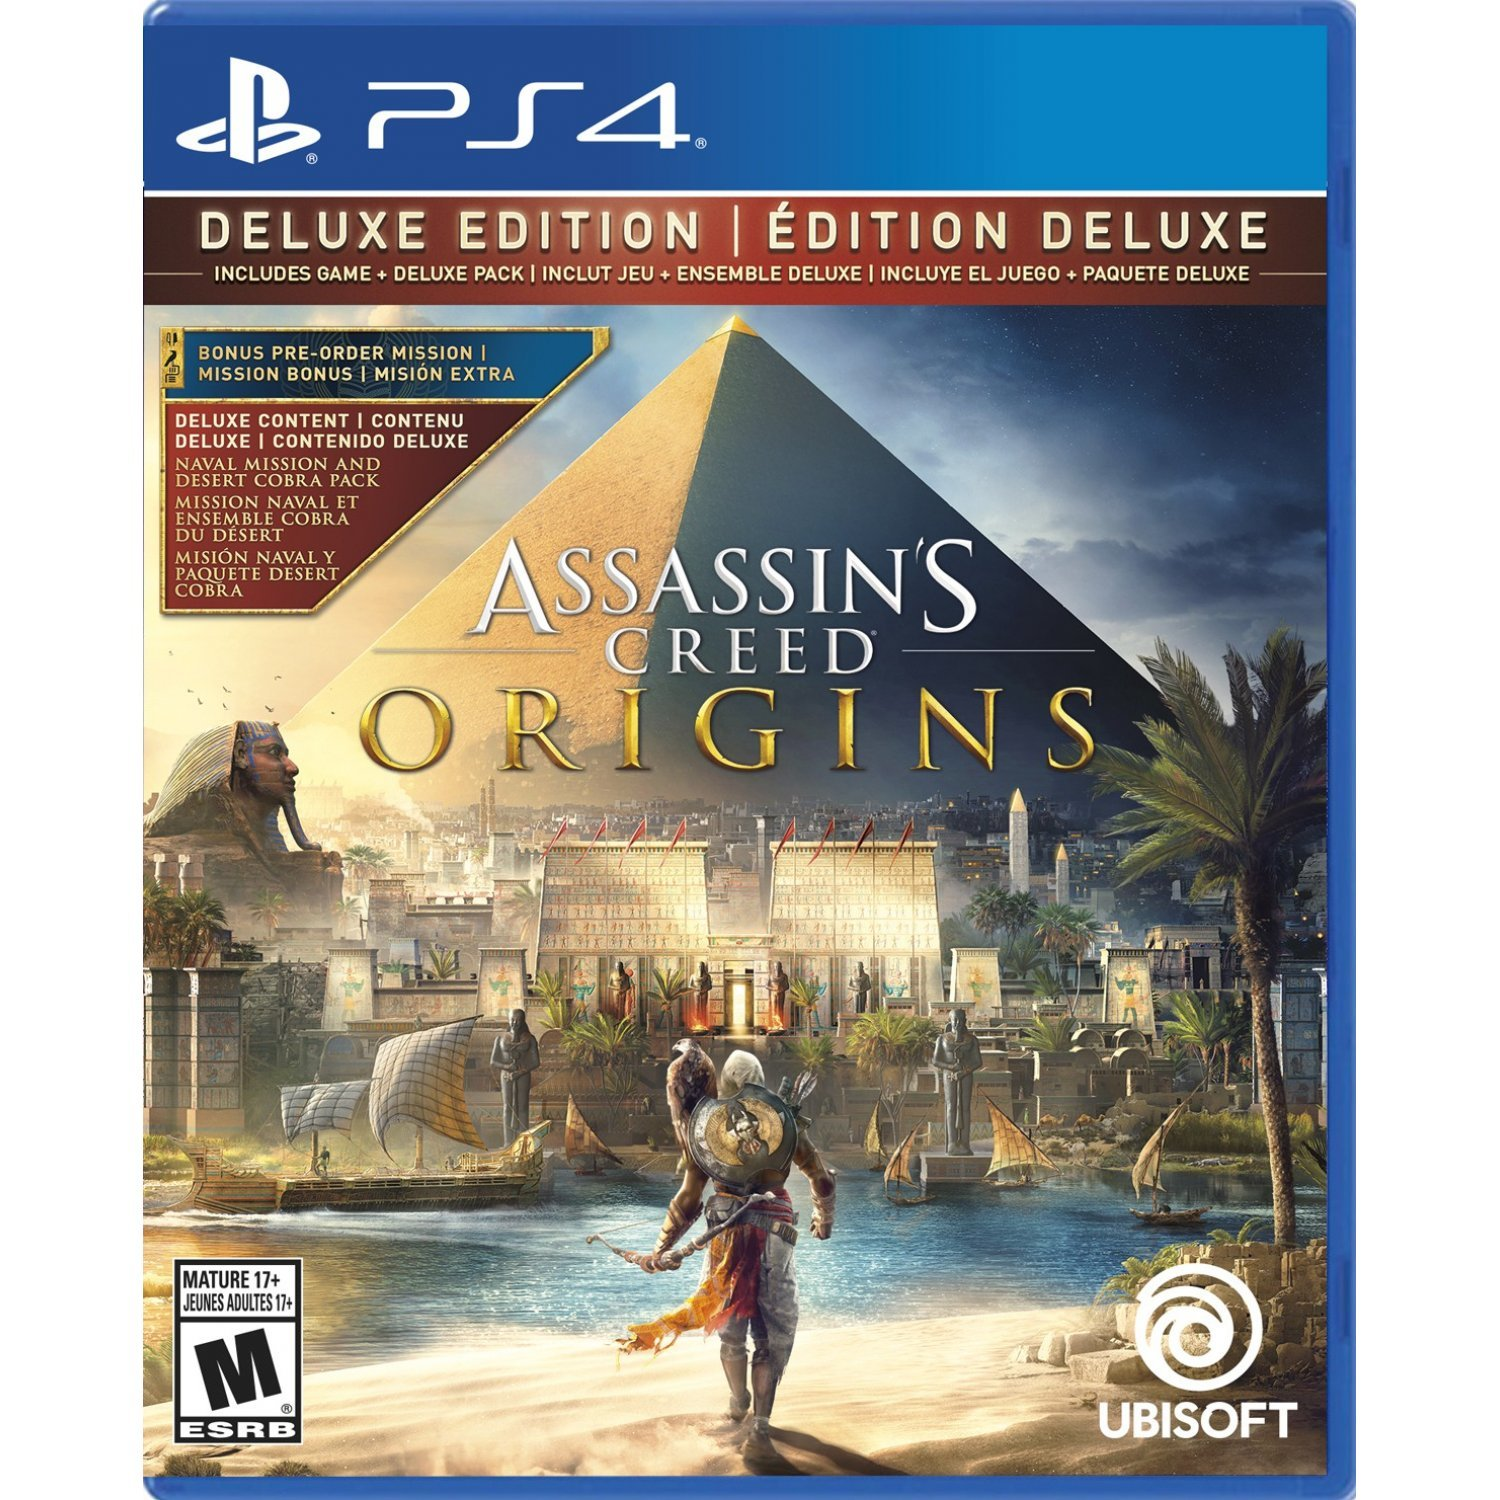 assassins-creed-origins-deluxe-edition-spanish-cover-586355.13.jpg